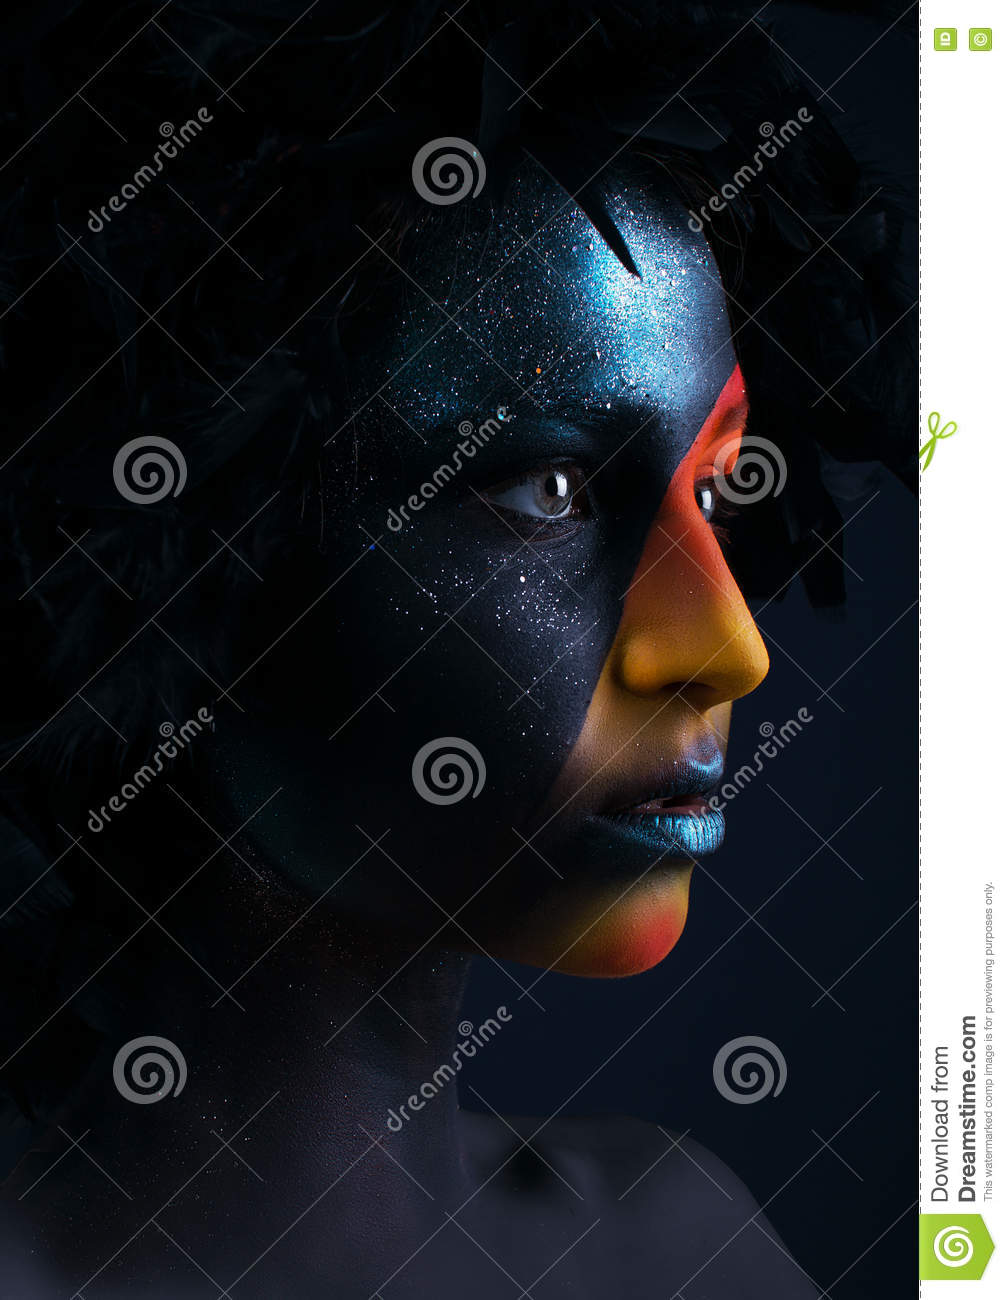 Girl with black make-up and colorful bodypainting